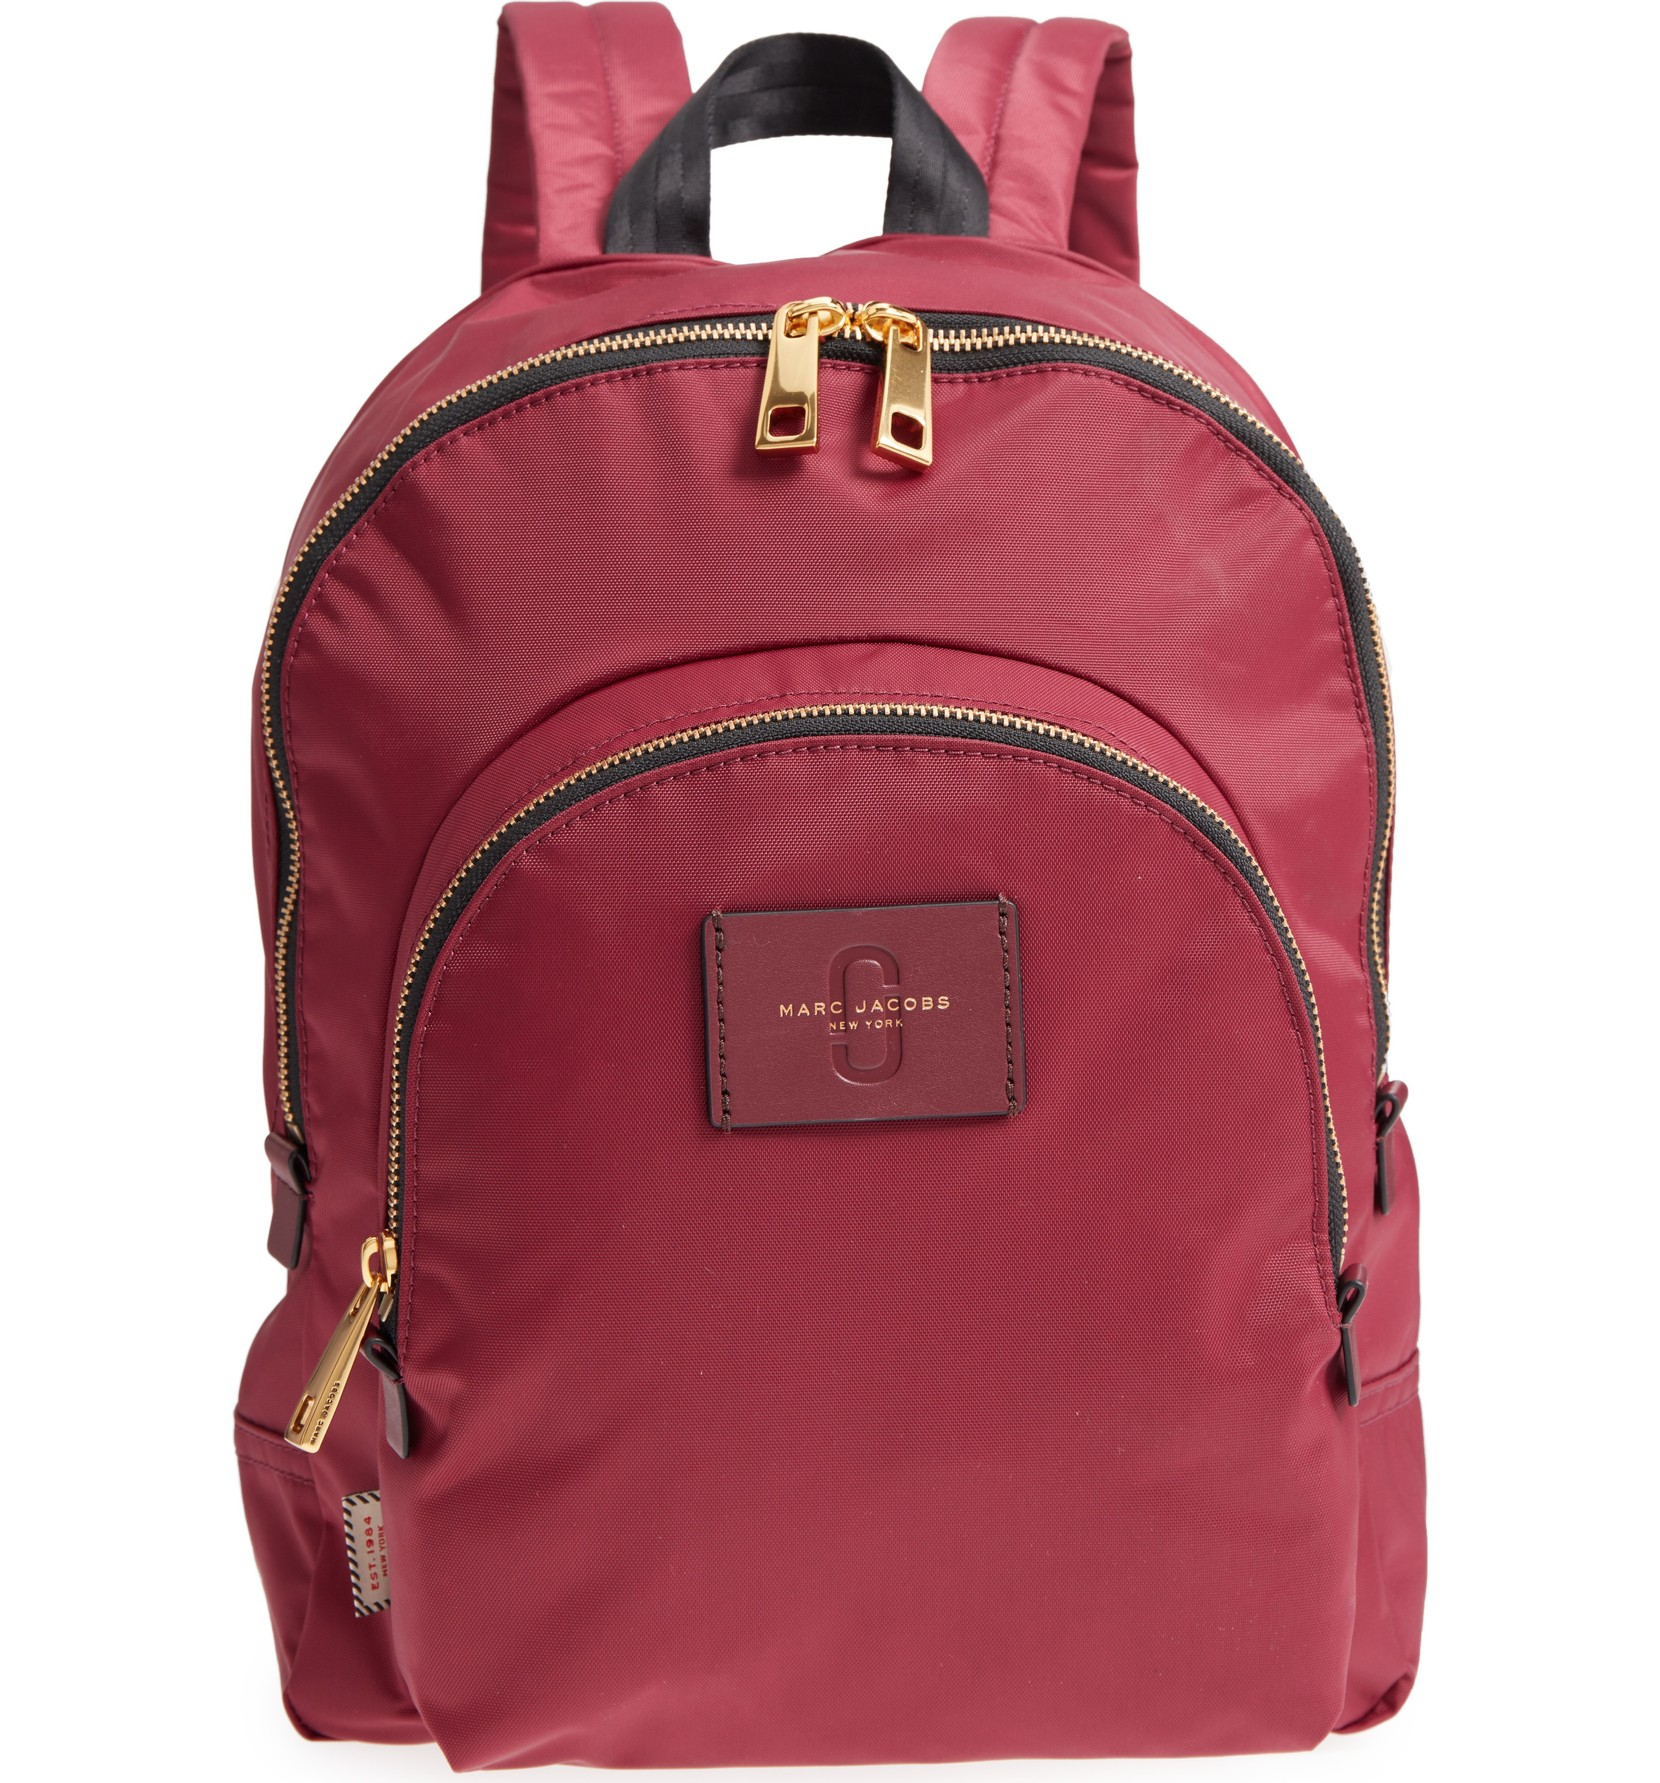 This Double Pack Nylon Backpack was $195.00 and is now $116.98 The new diaper bag!{&amp;nbsp;}<p>(Image: Nordstrom)</p>